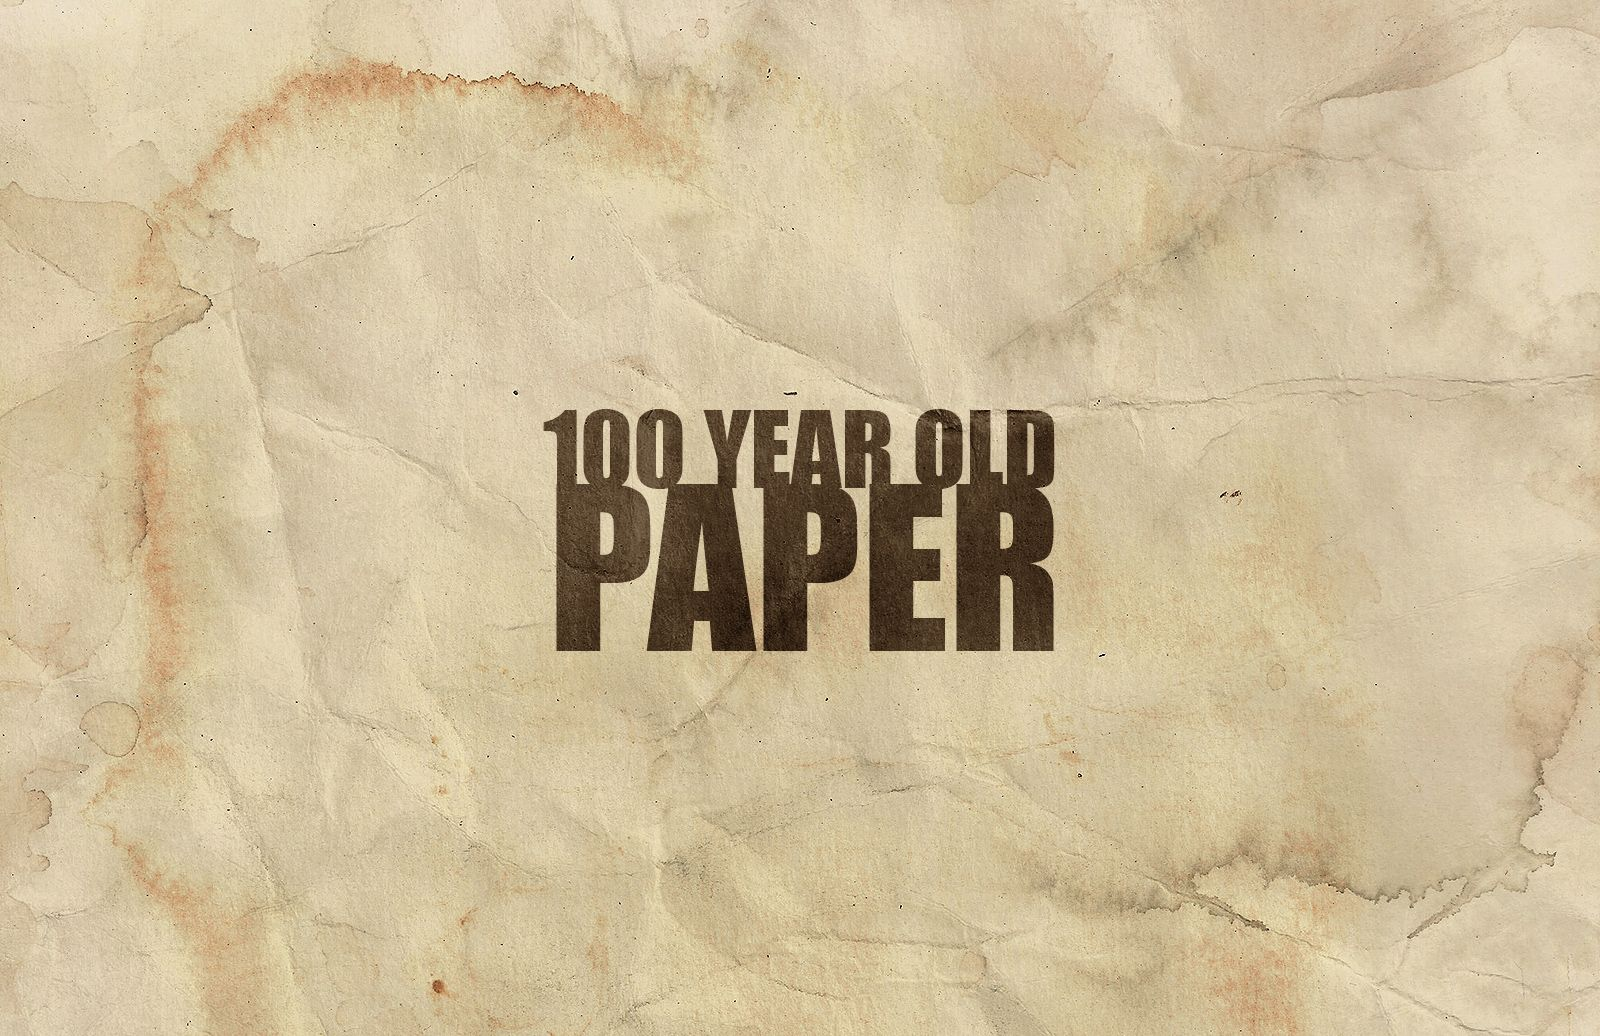 100 Year Old Paper Textures Old Paper Paper Texture Vintage Paper Textures